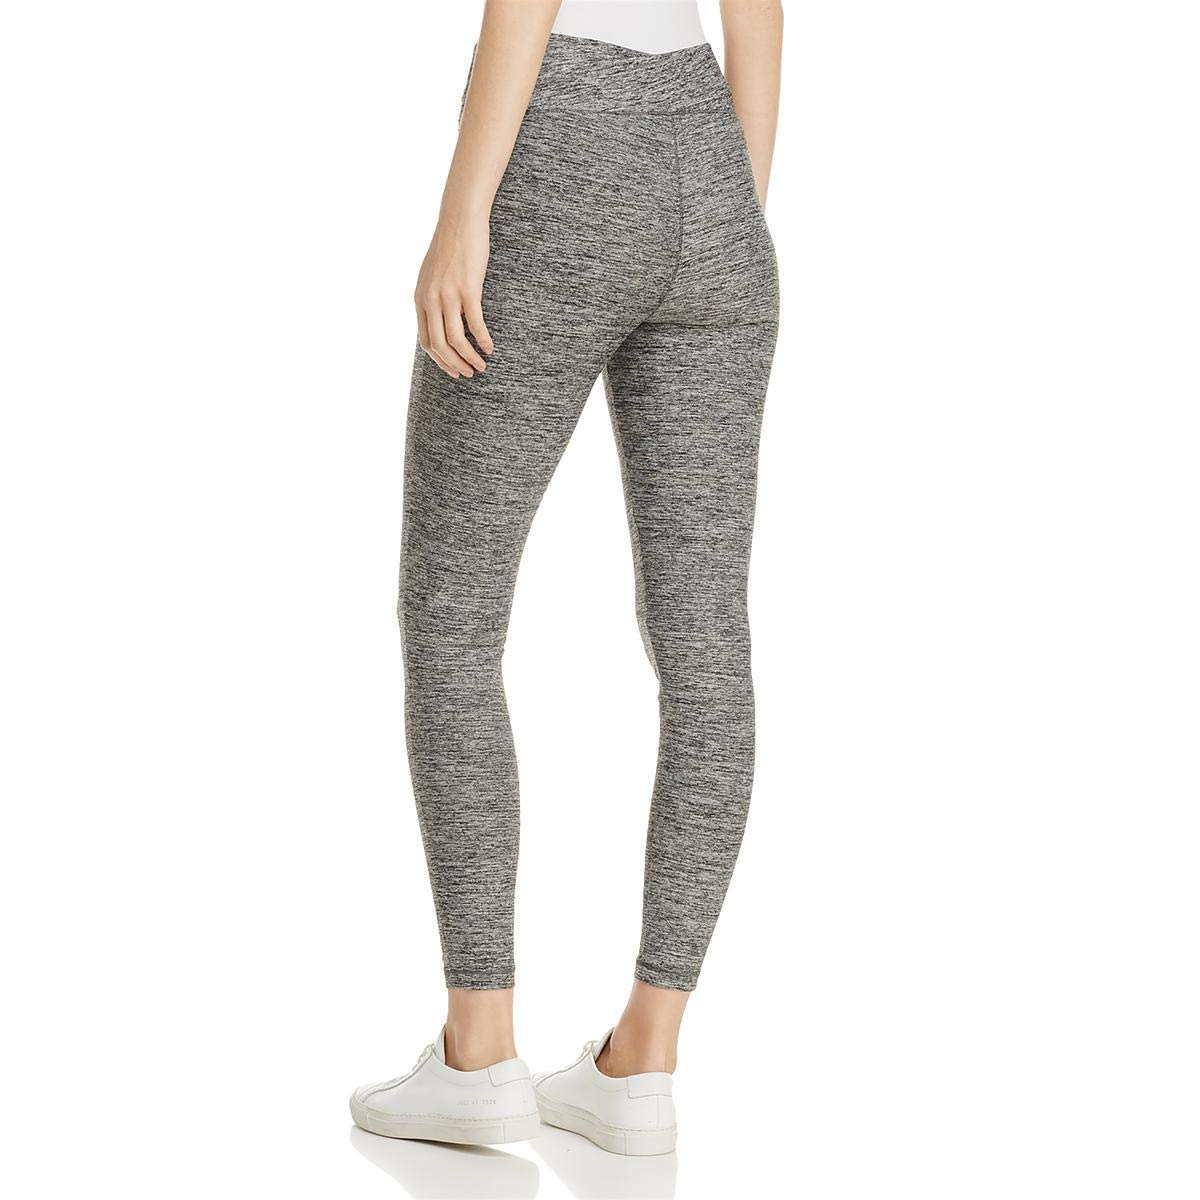 92acc488e2546a Eileen Fisher Womens Tech Fitness Yoga Athletic Leggings Gray L at Amazon  Women's Clothing store: